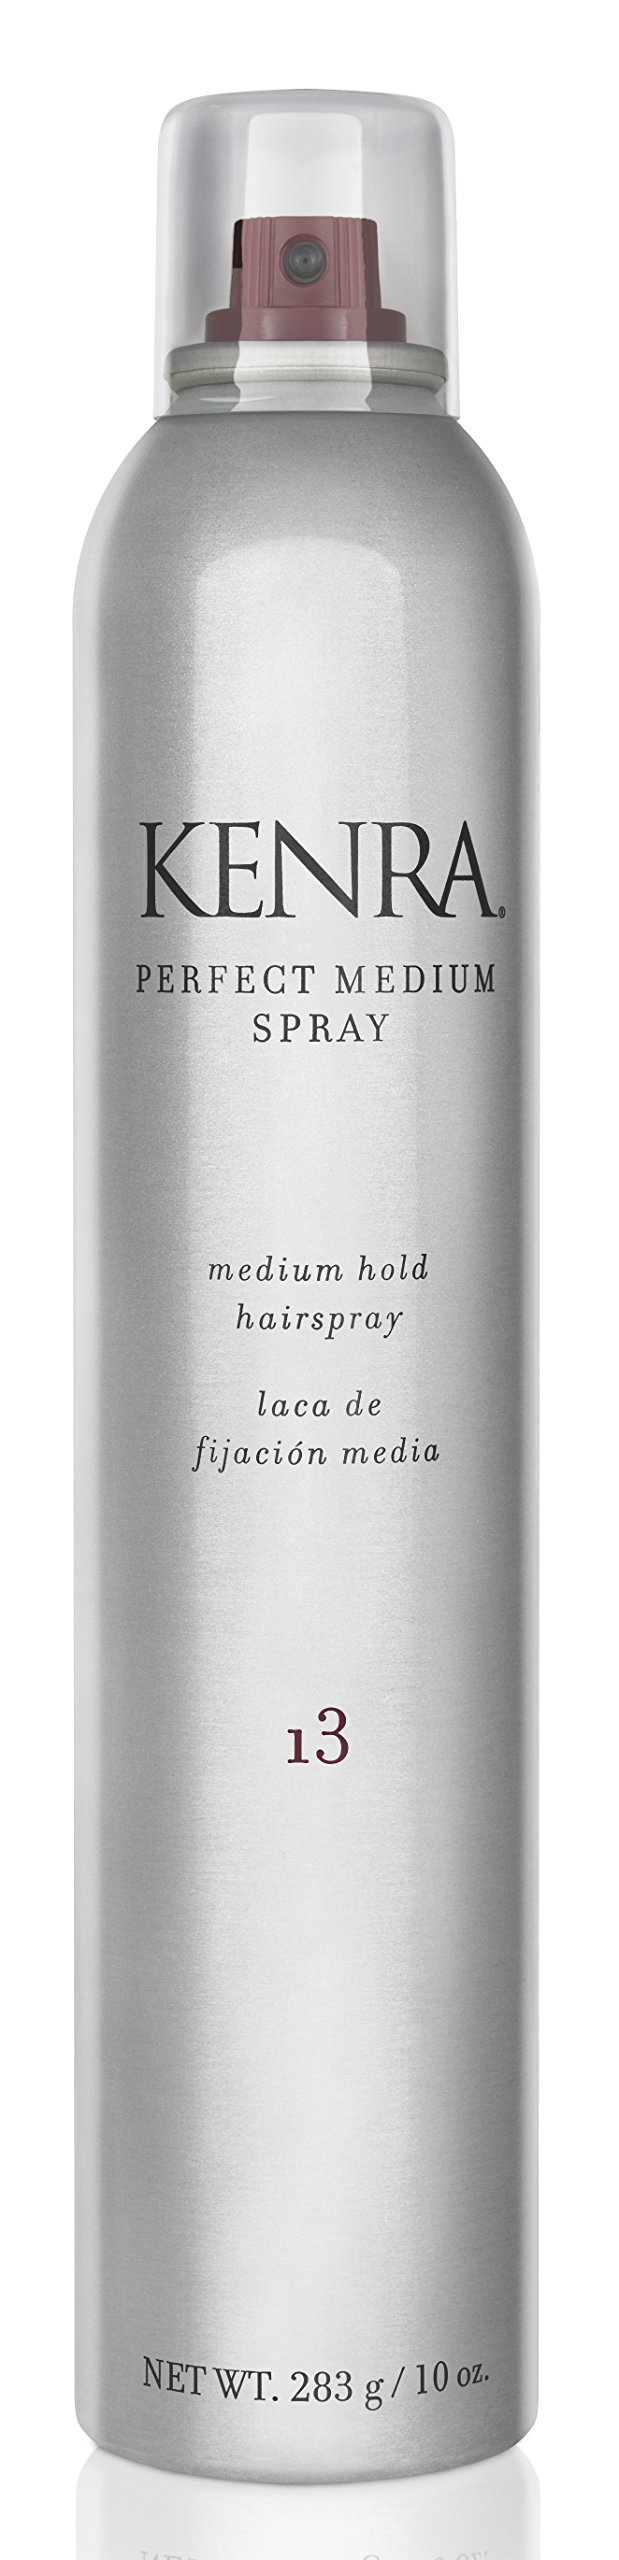 Kenra Perfect Medium Spray #13, 55% VOC, 10-Ounce